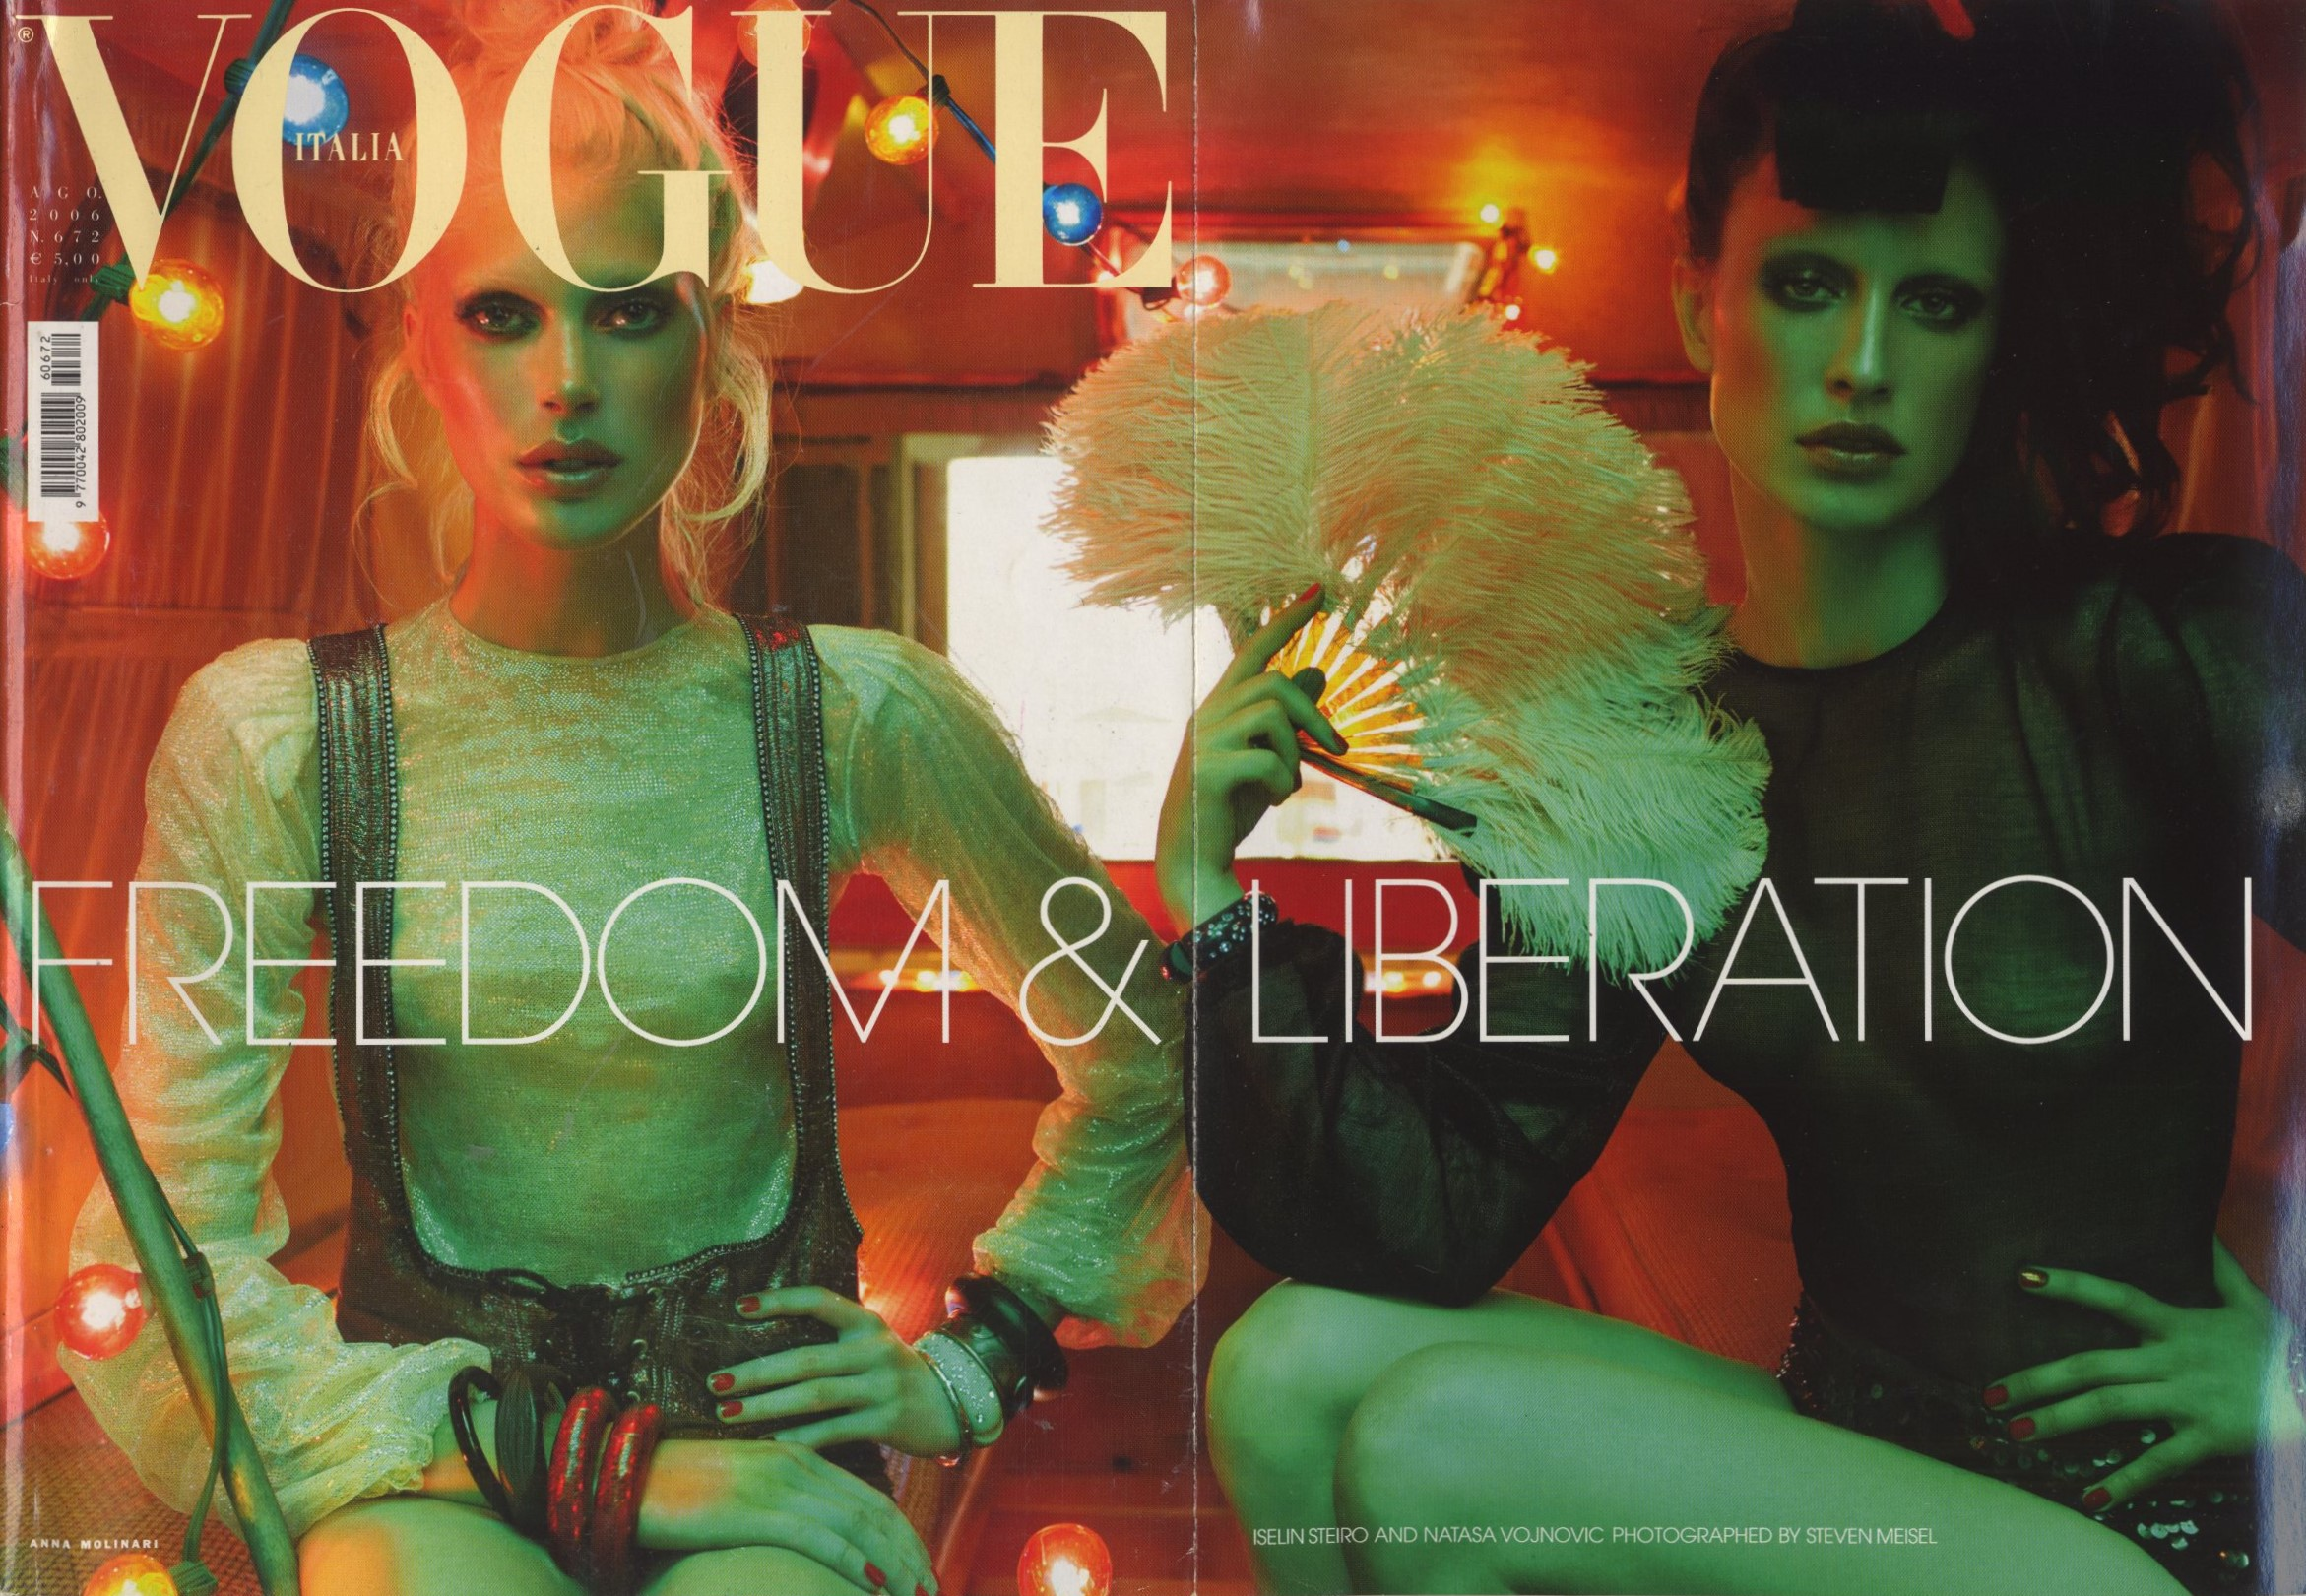 ISELIN STEIRO AND NATASA VOJNOVIC | PHOTOGRAPHY STEVEN MEISEL | VOGUE ITALIA N.672 | AUGUST 2006